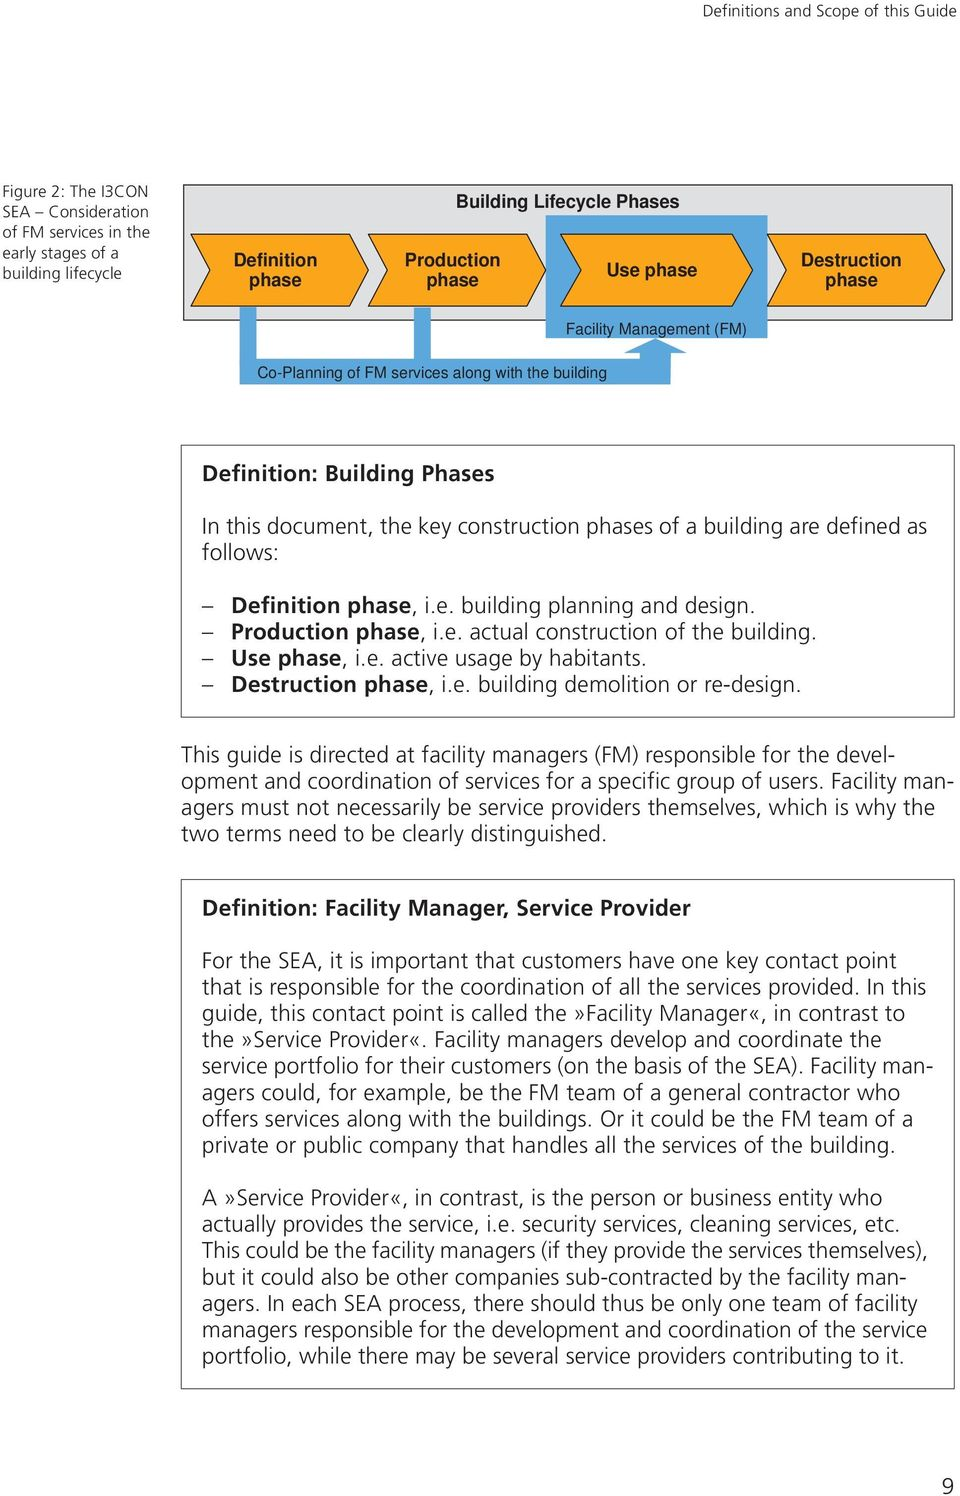 as follows: Definition phase, i.e. building planning and design. Production phase, i.e. actual construction of the building. Use phase, i.e. active usage by habitants. Destruction phase, i.e. building demolition or re-design.